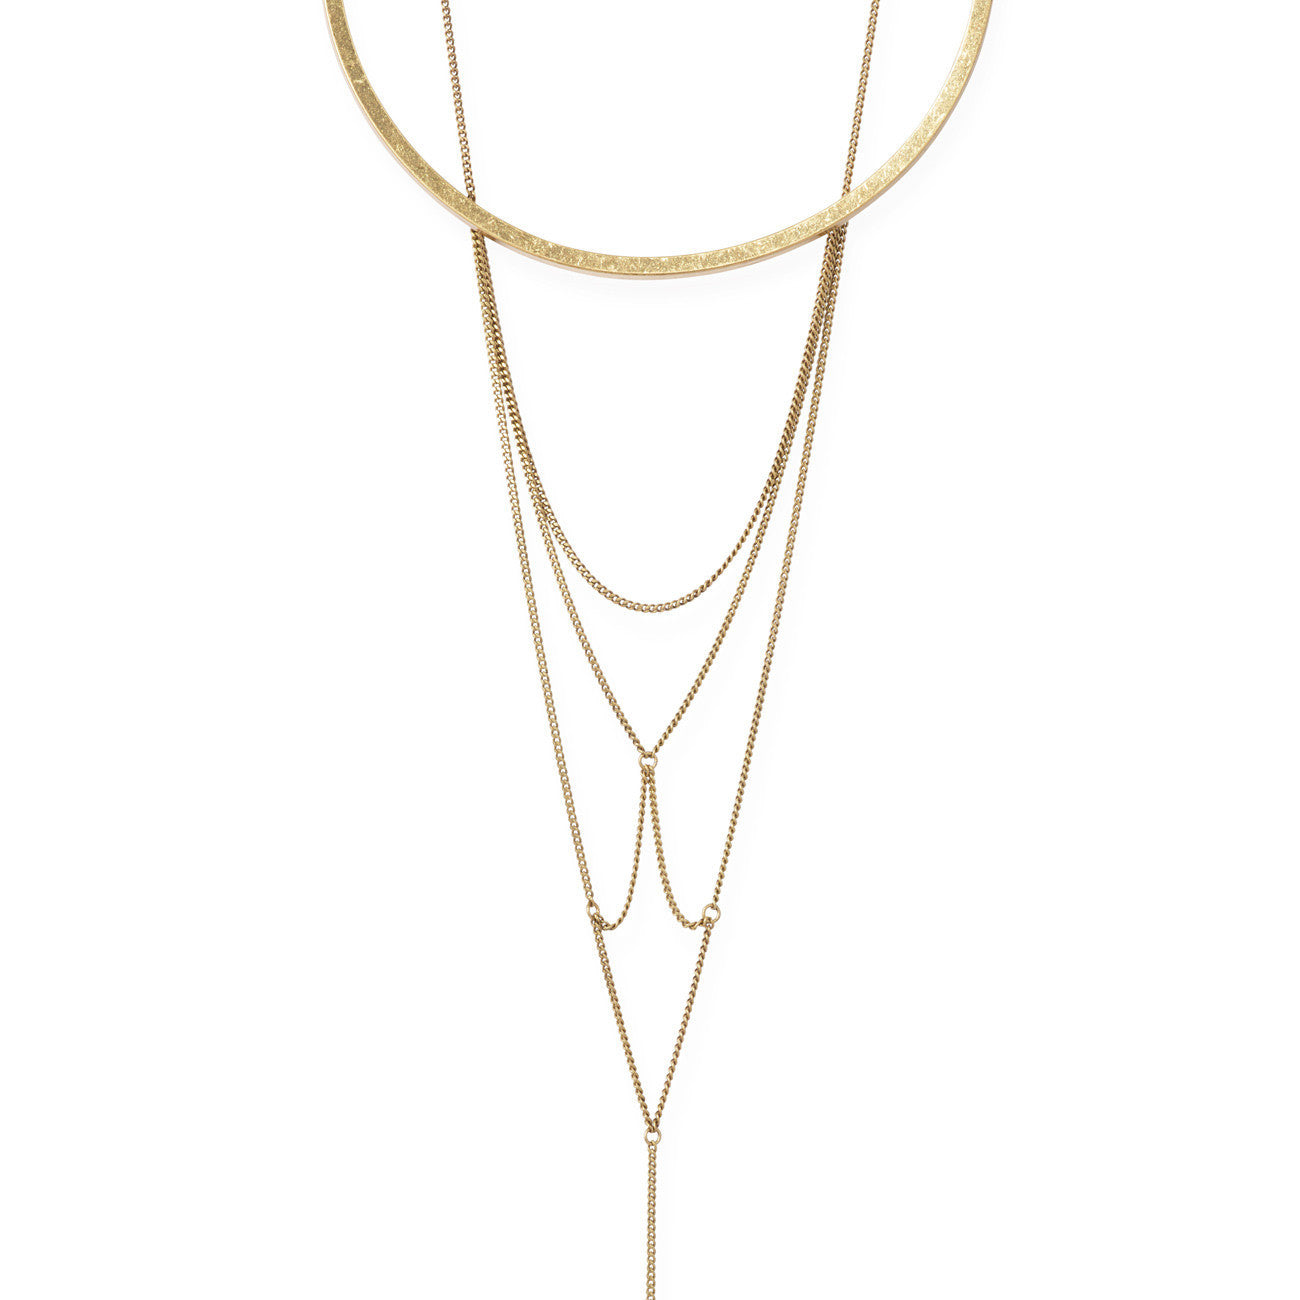 Neith Necklace in Gold by Jenny Bird